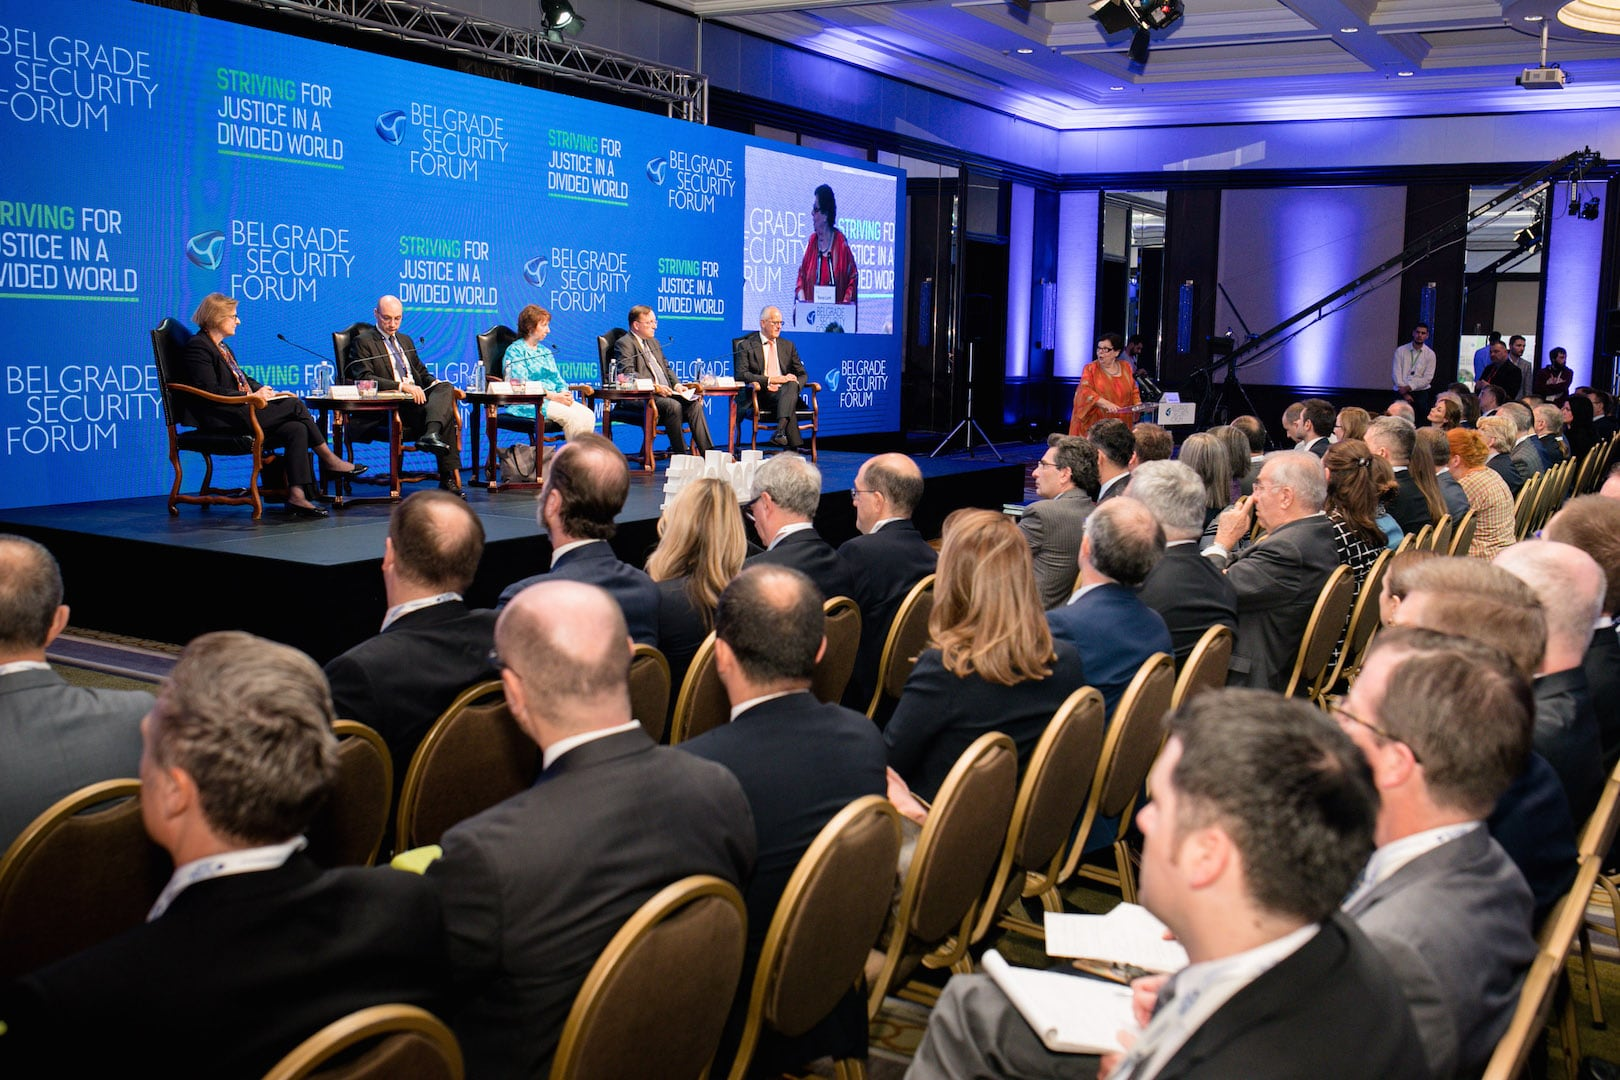 Ninth Belgrade Security Forum:  Striving for Justice in a Divided World